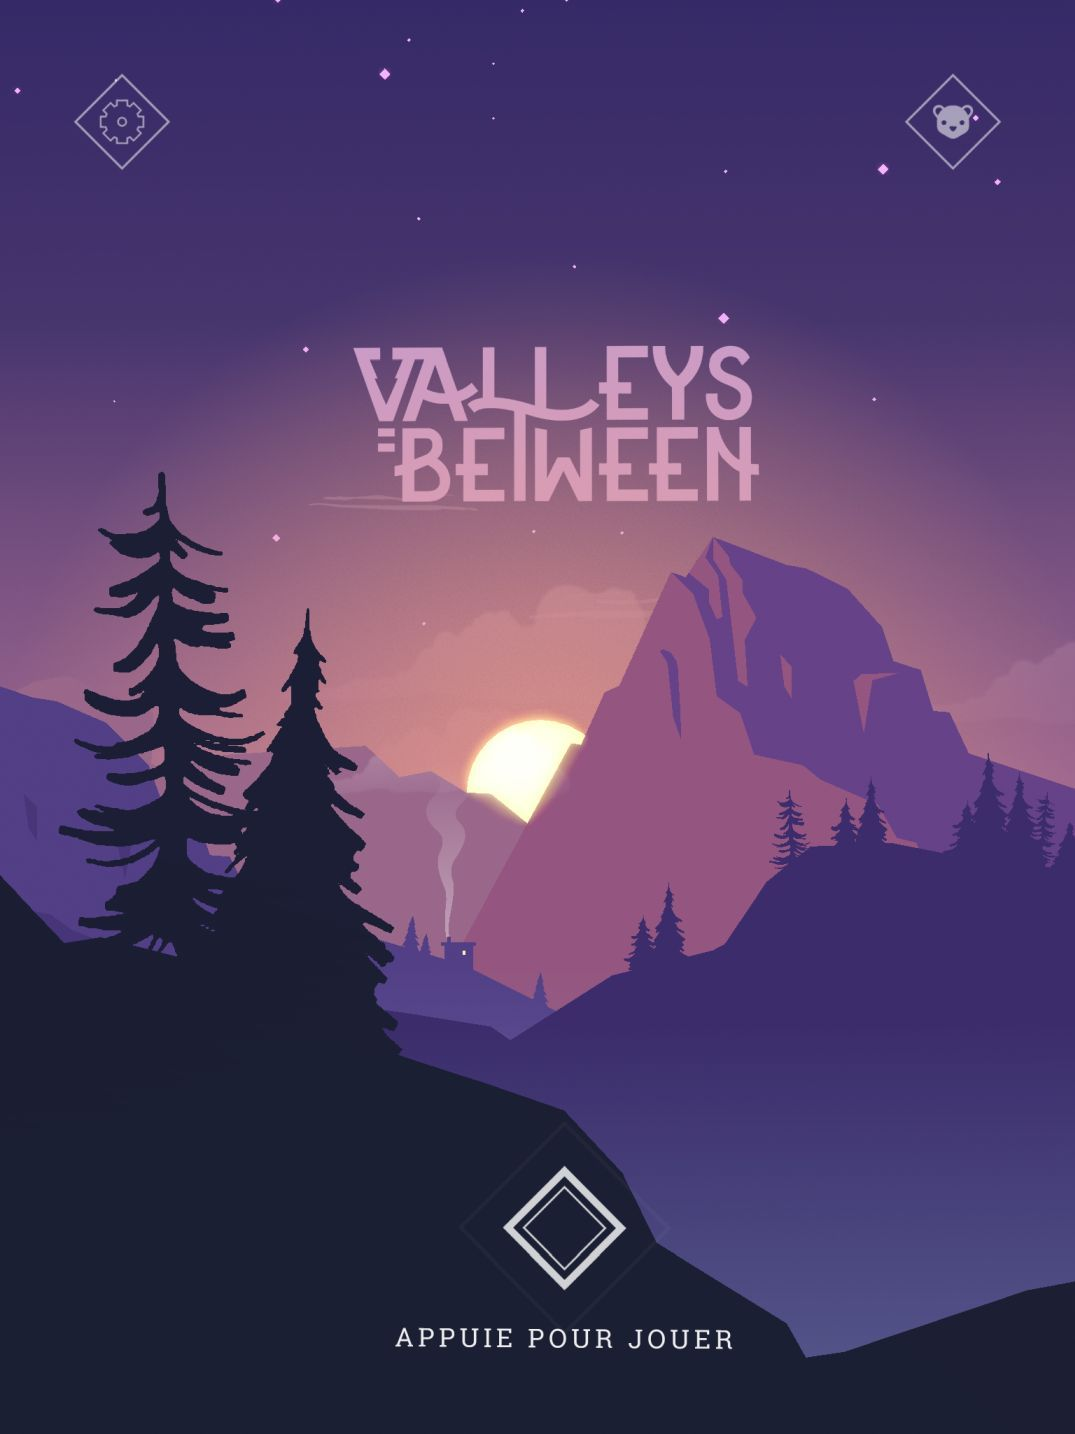 Valleys Between (copie d'écran 1 sur iPhone / iPad)